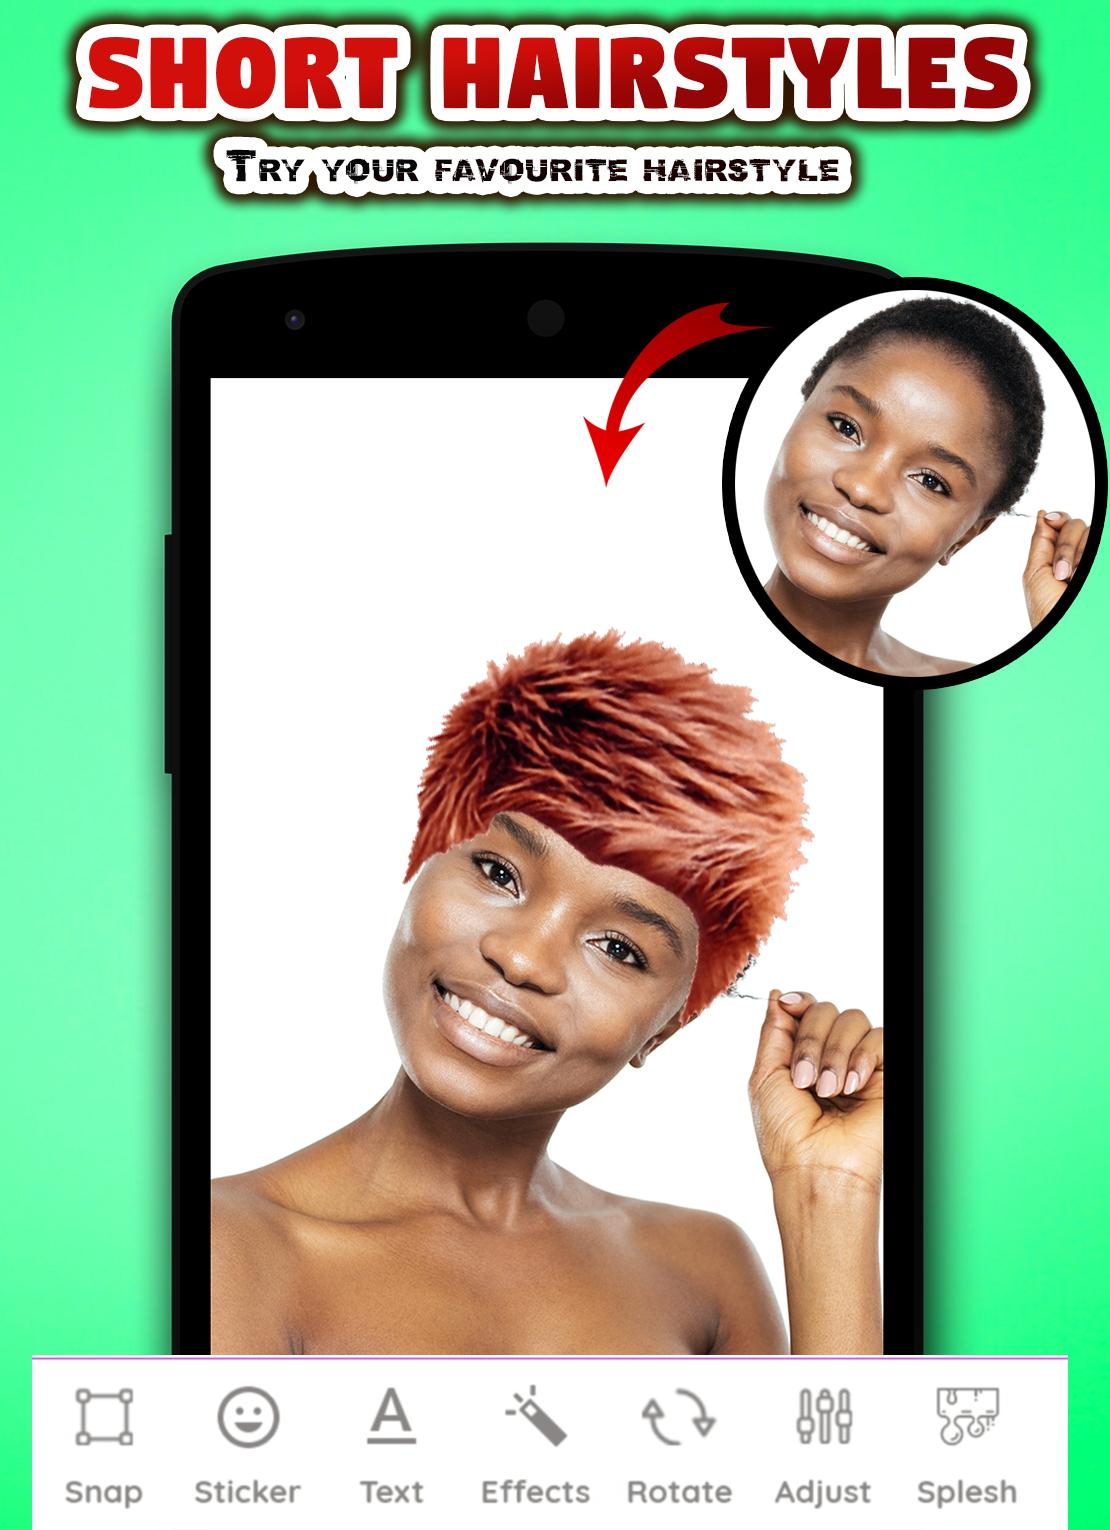 Short Hair Hairstyles For Women Photo Editor for Android - APK